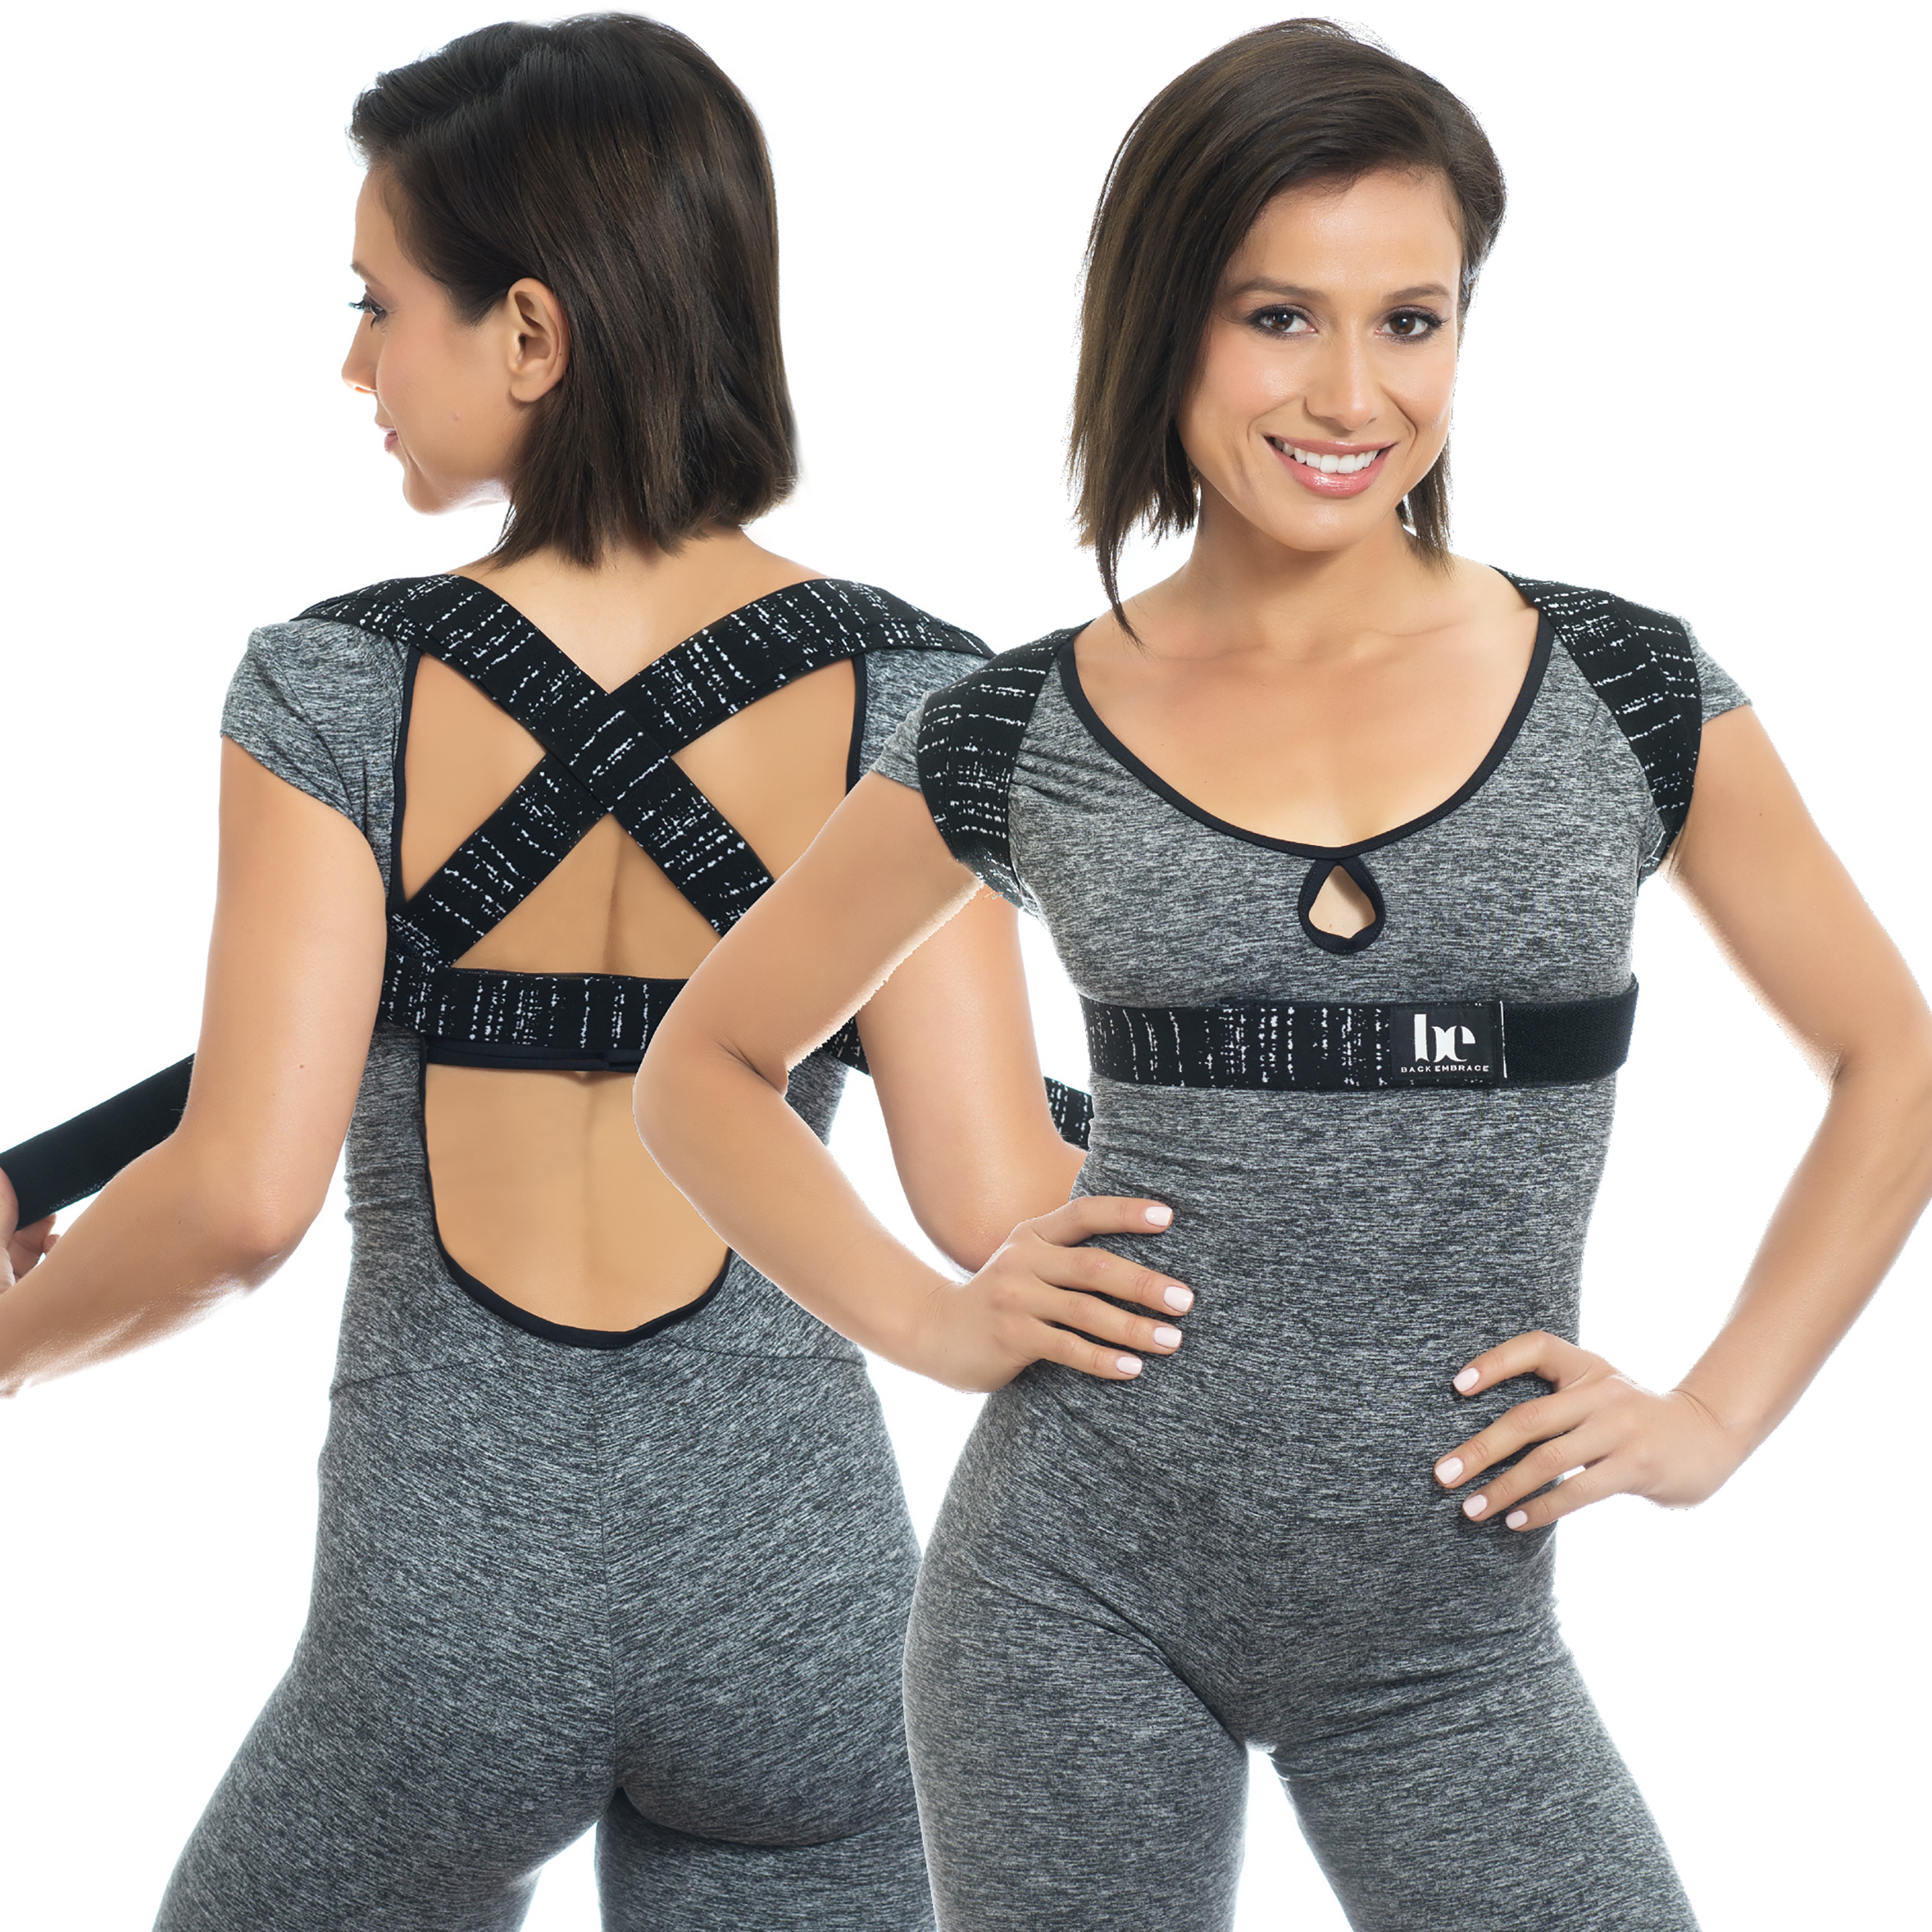 BackEmbrace is an effective orthopedic posture support that helps prevent hunching and slouching. Recommended by doctors, BackEmbrace helps relieve tension and strain in the upper back, neck and shoulders.